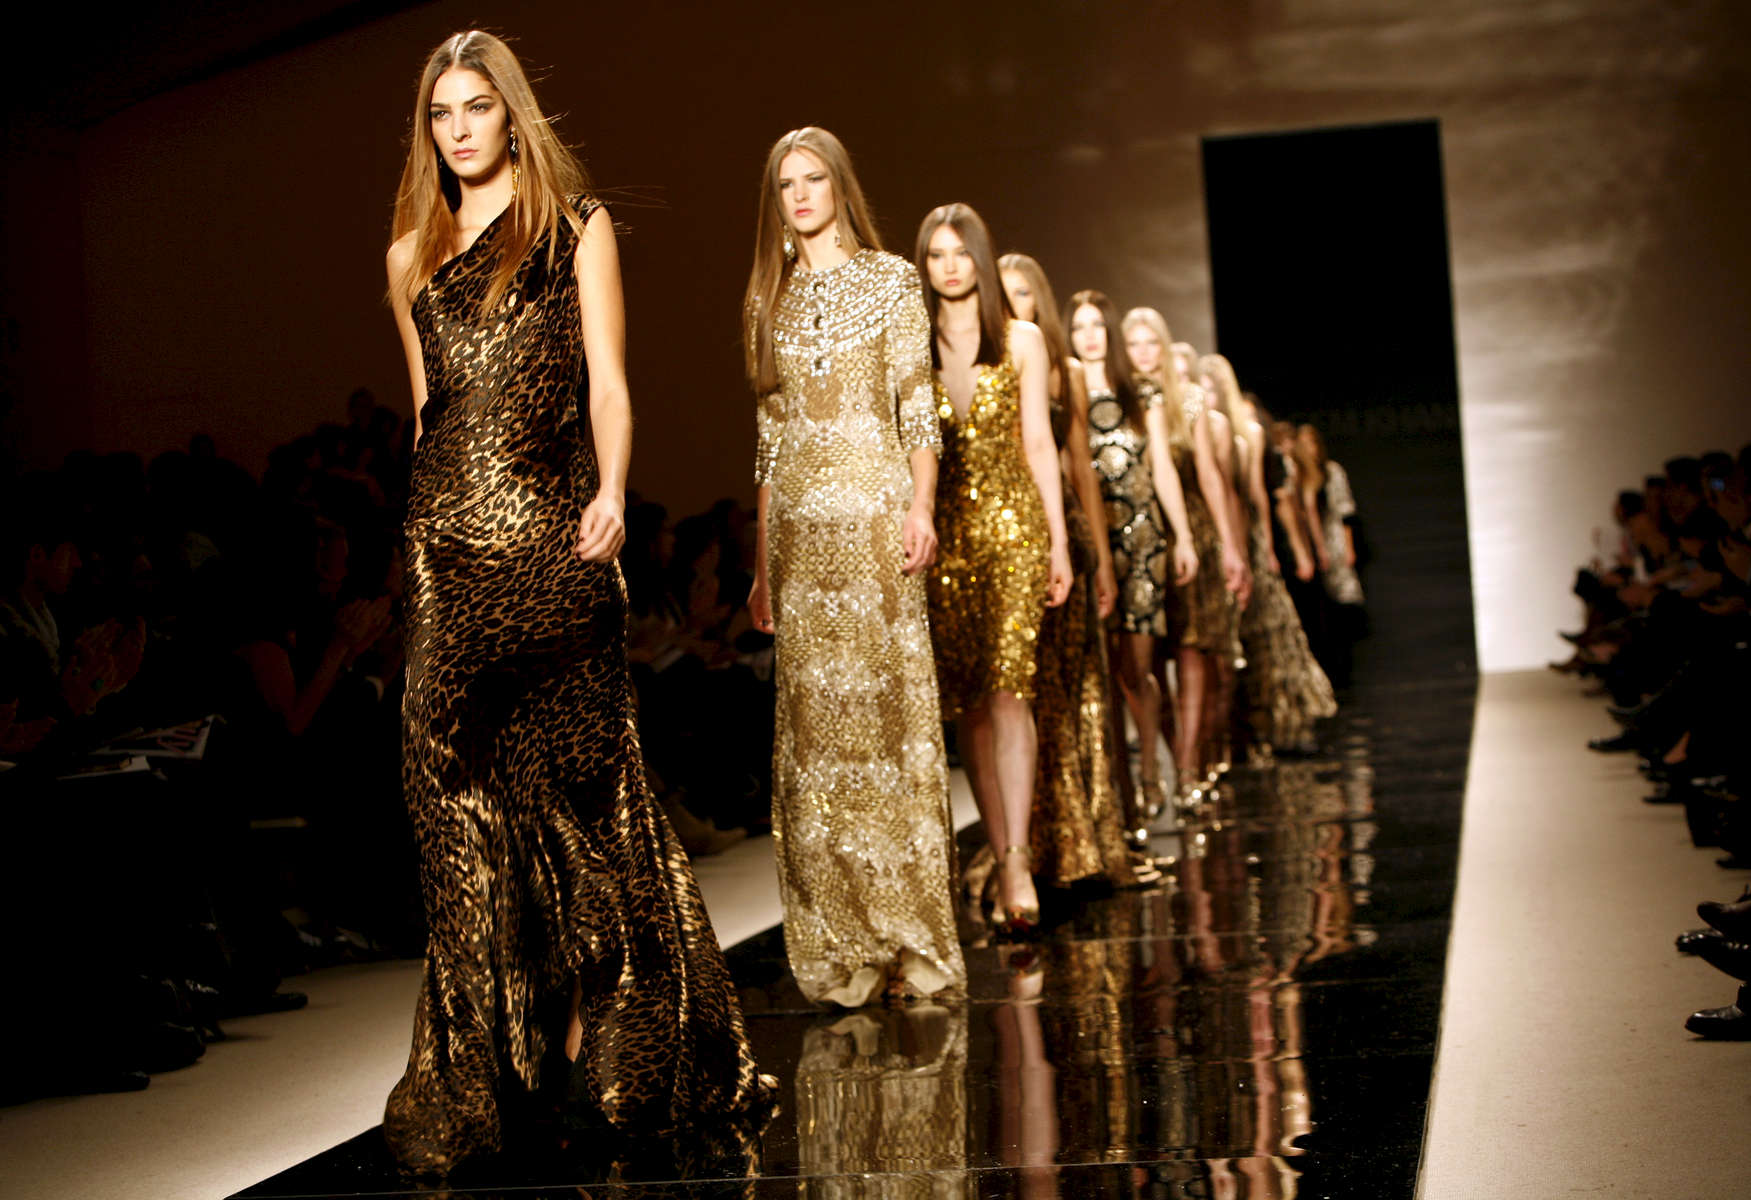 Models walk the runway at the end of the Naeem Khan fashion show, at the New York fashion week, in New York.